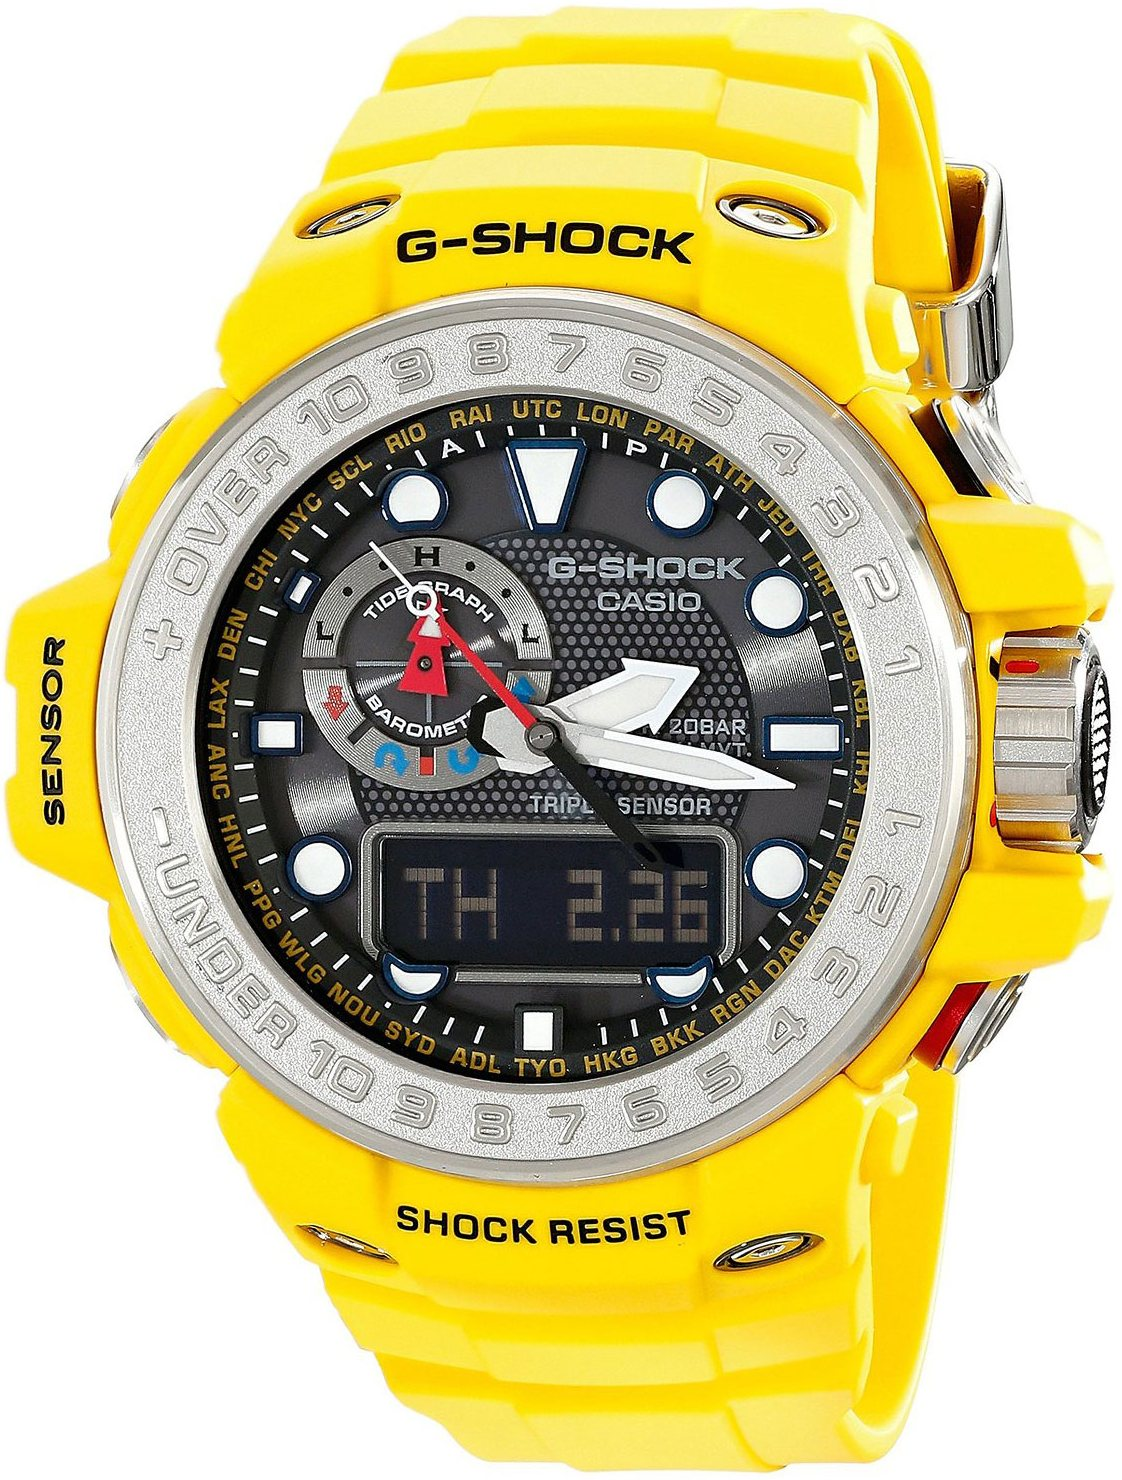 Casio G-shock G-Premium GWN-1000-9A casio g shock gulfmaster tough mvt multi band 6 gwn 1000e 8ajf men s japan model